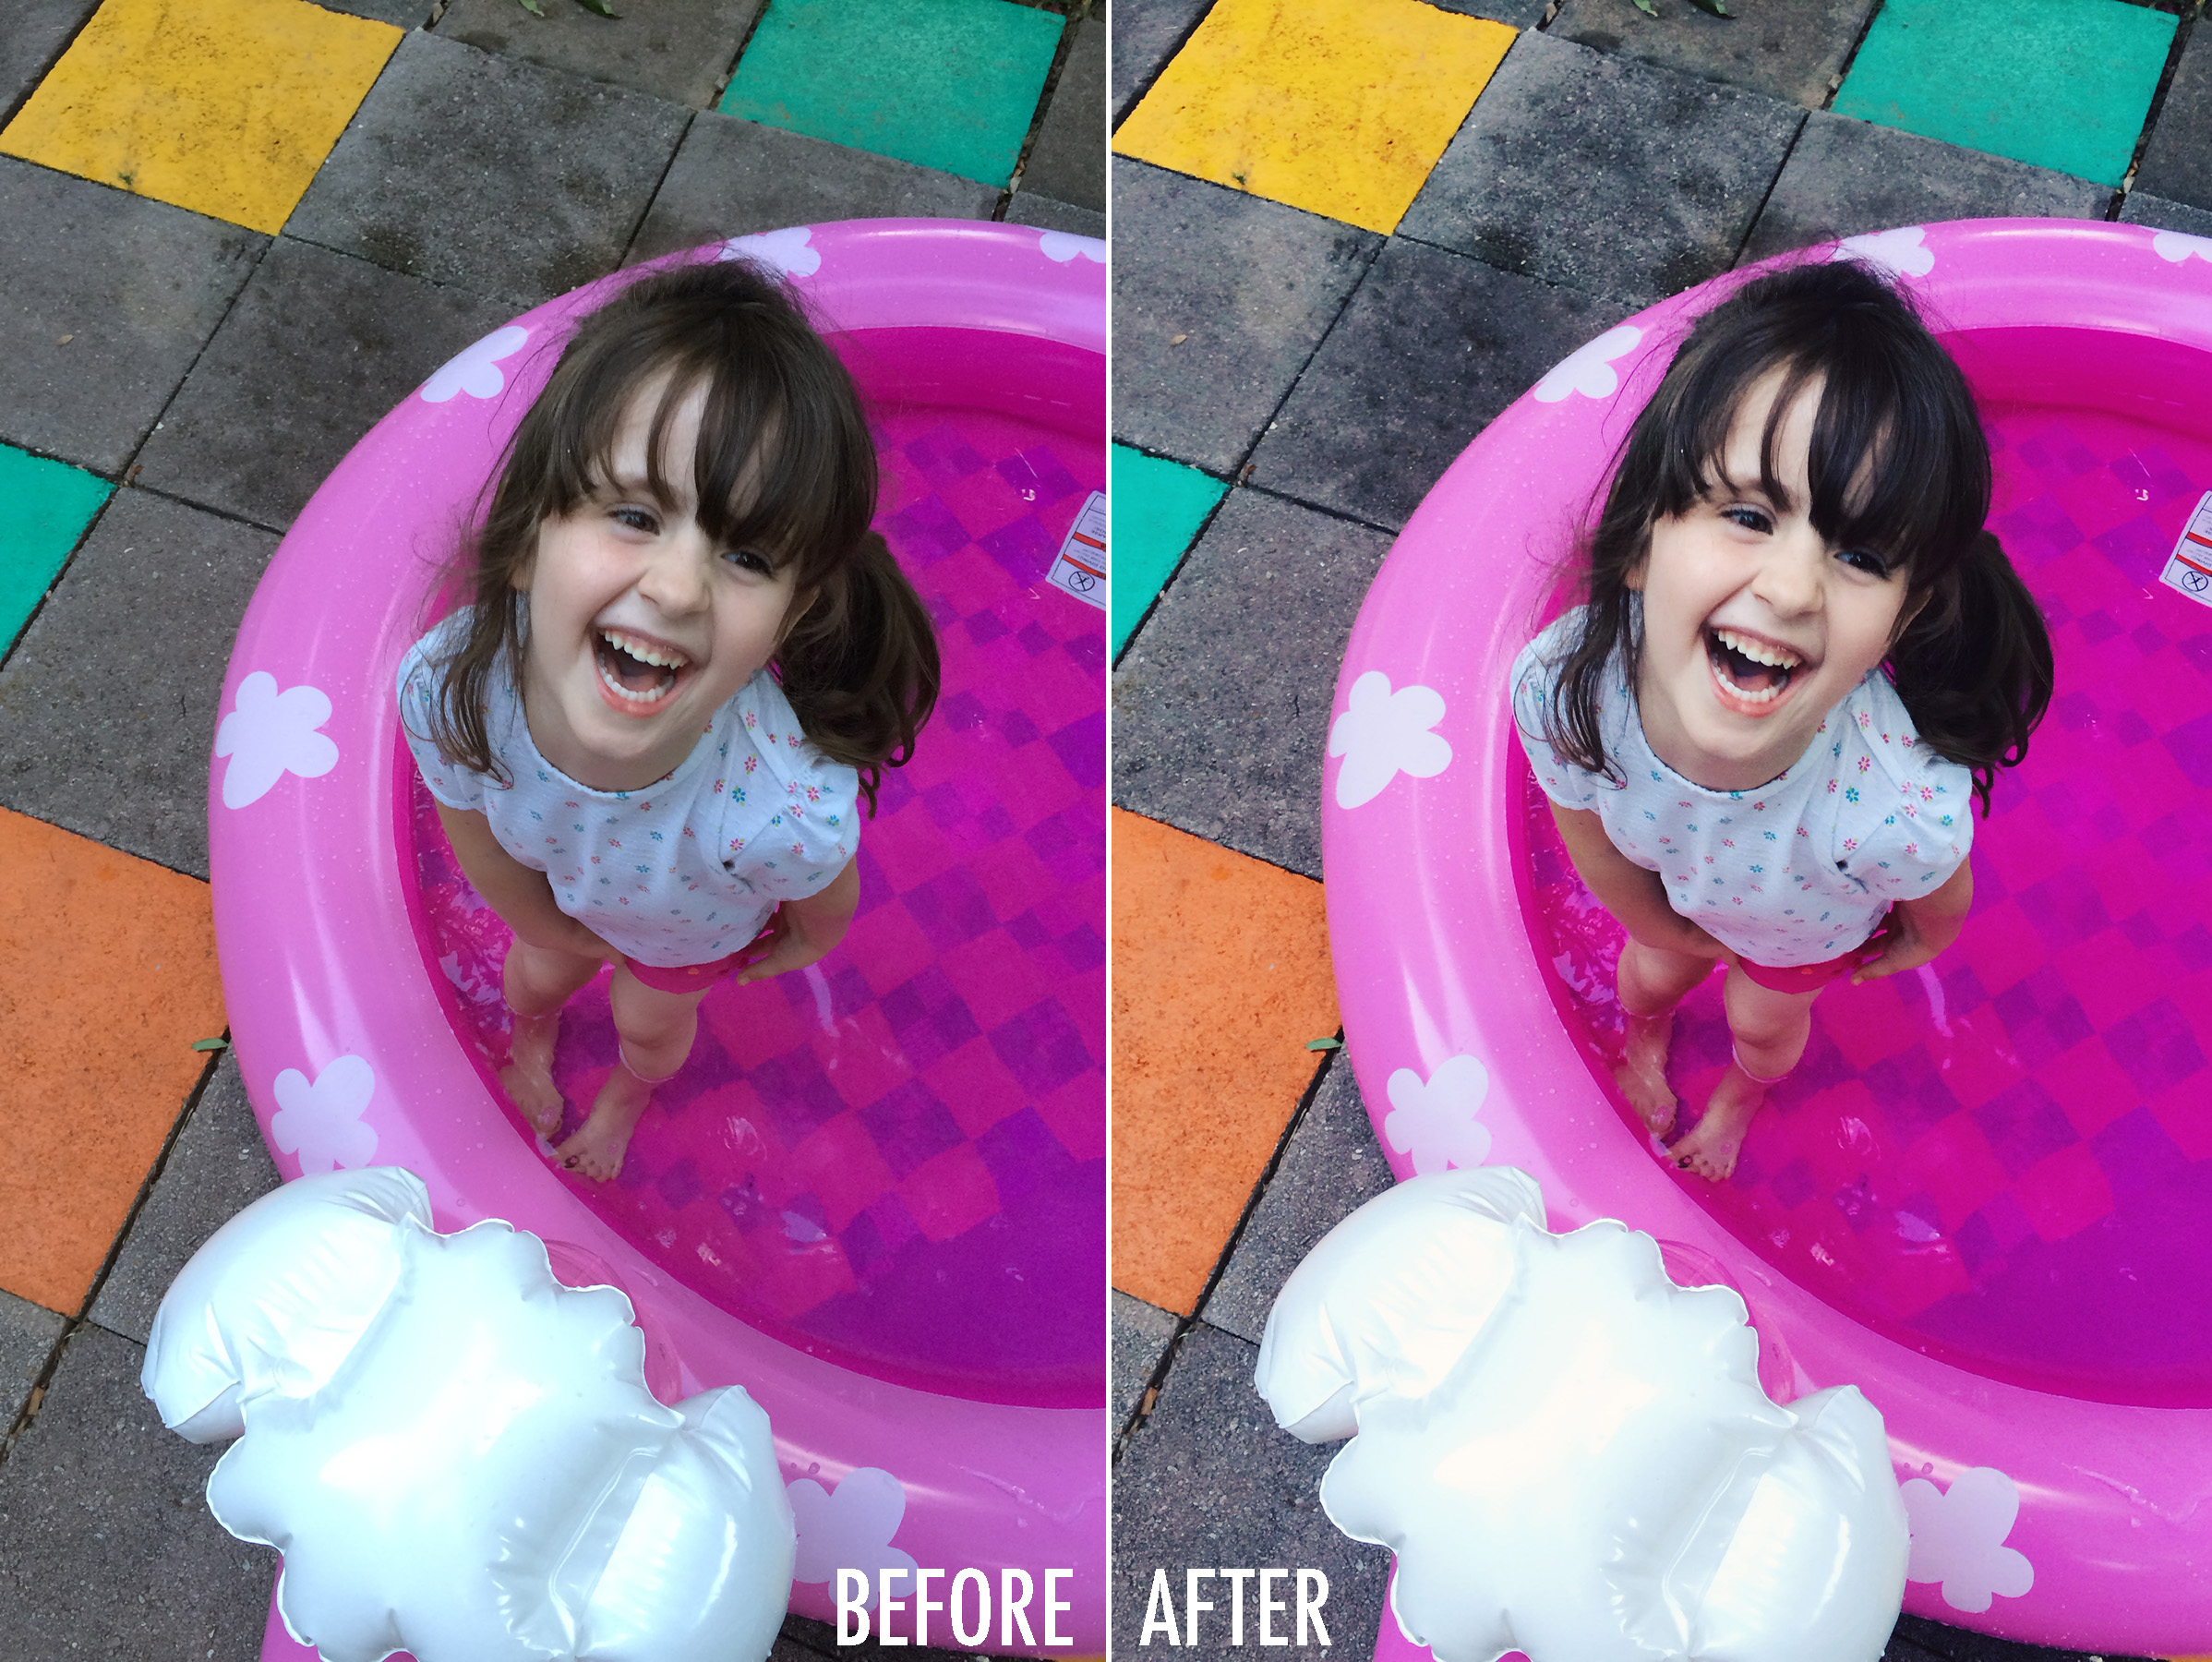 How to create bright and sharp photos with your iPhone (Tip 3)